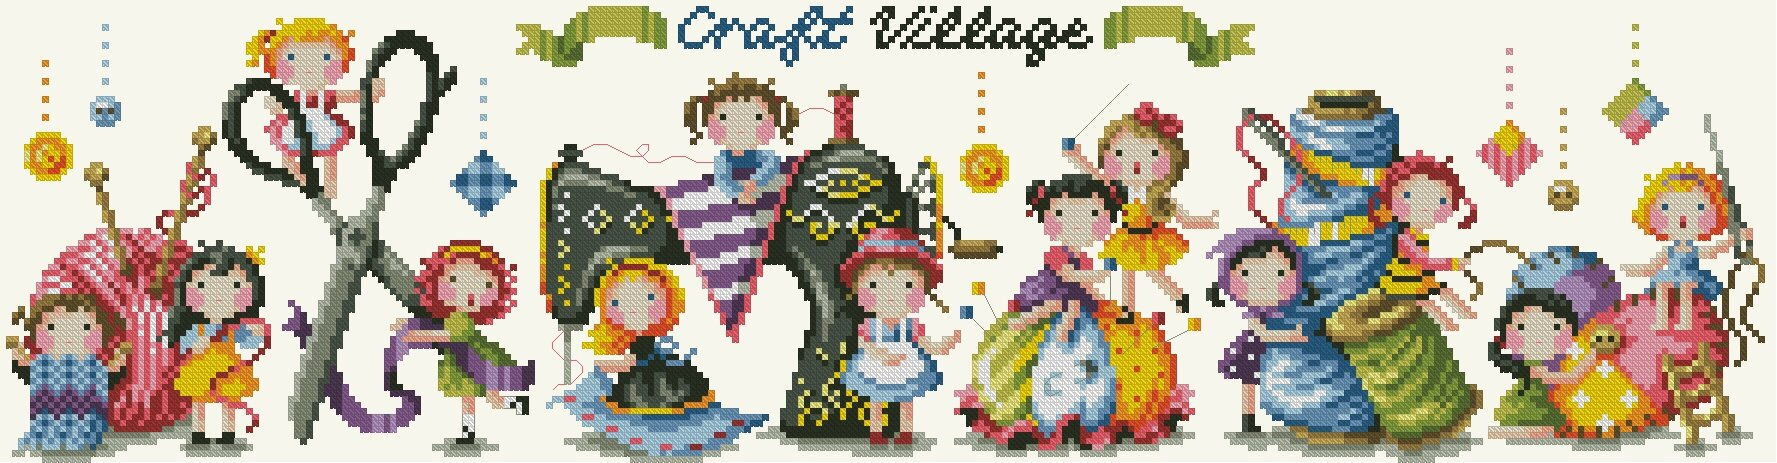 so-g72---craft-village